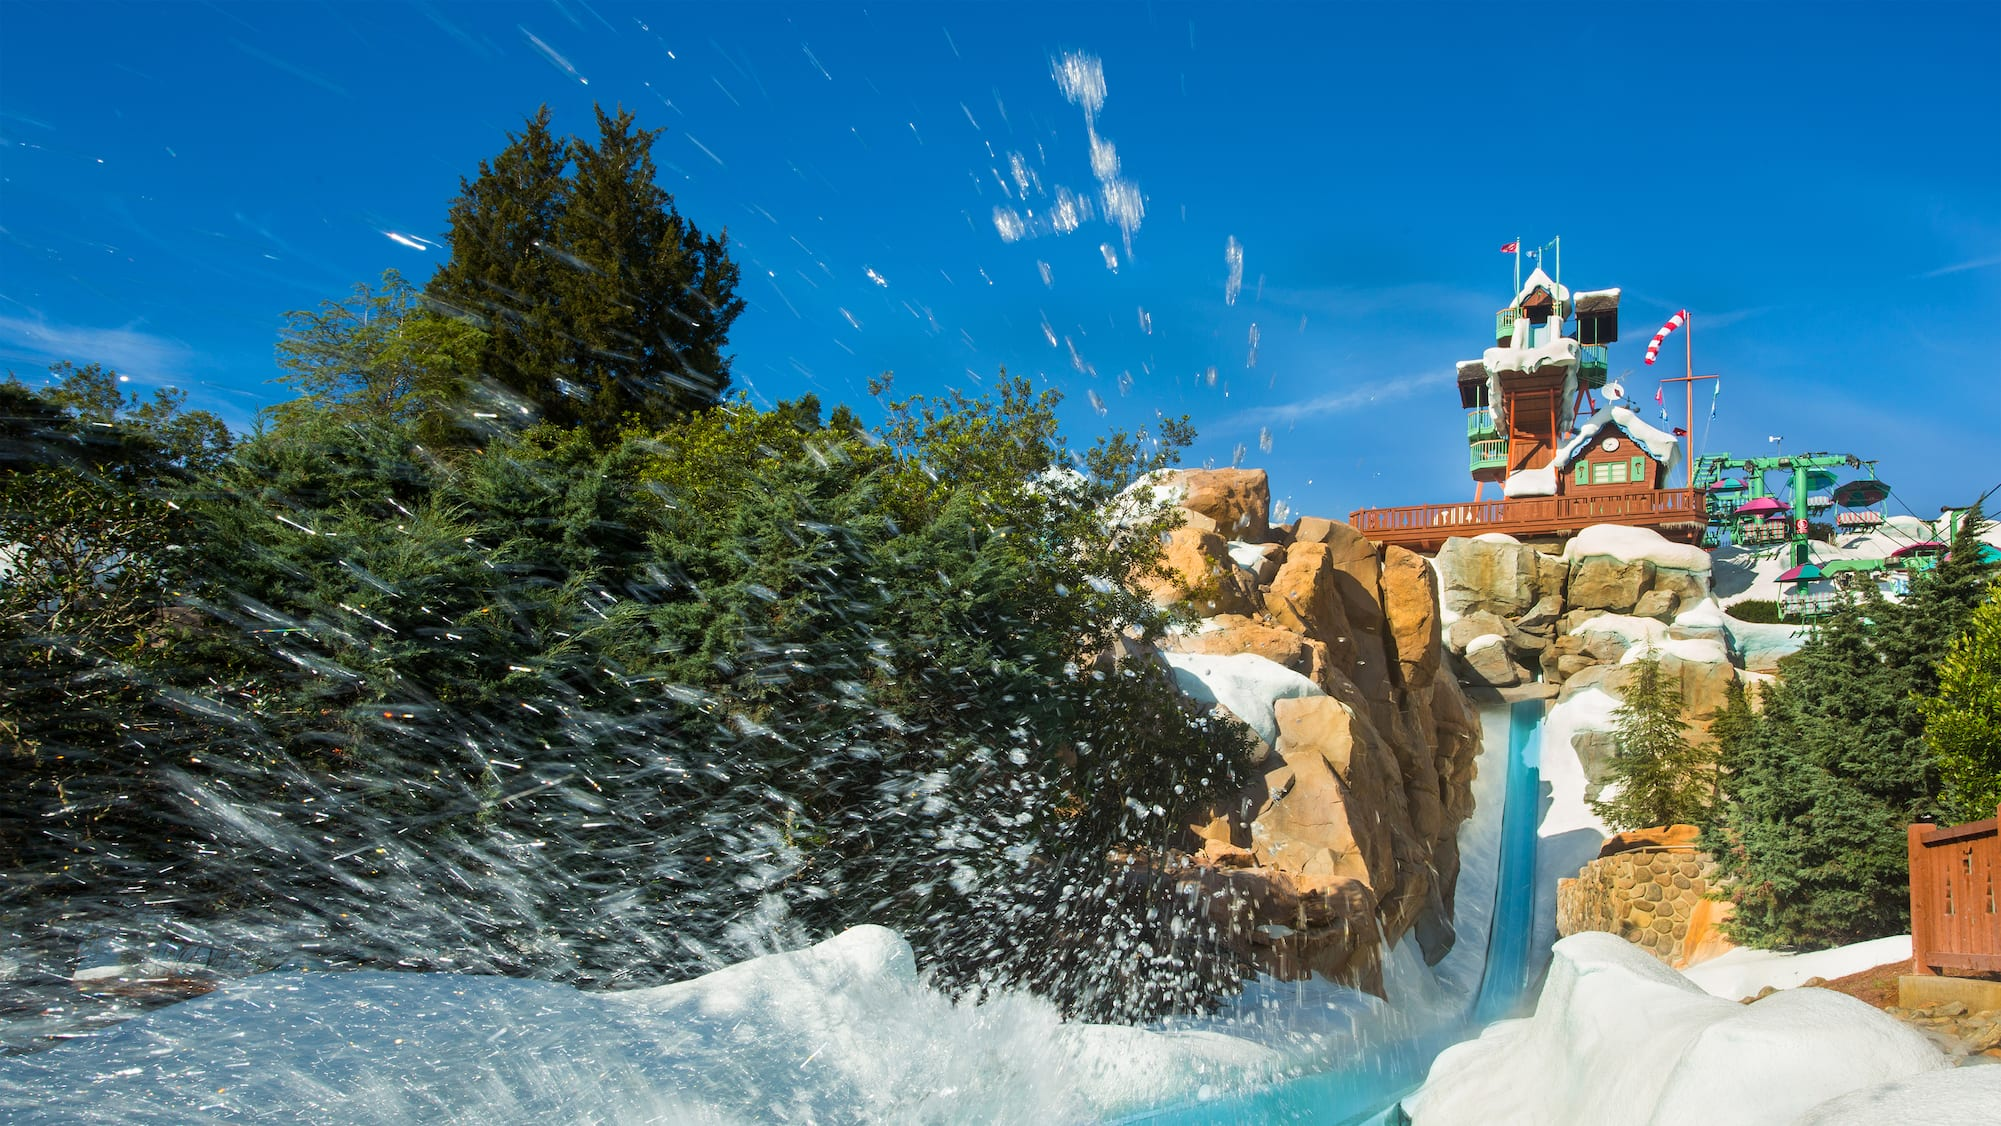 Summit Plummet | Blizzard Beach Attractions